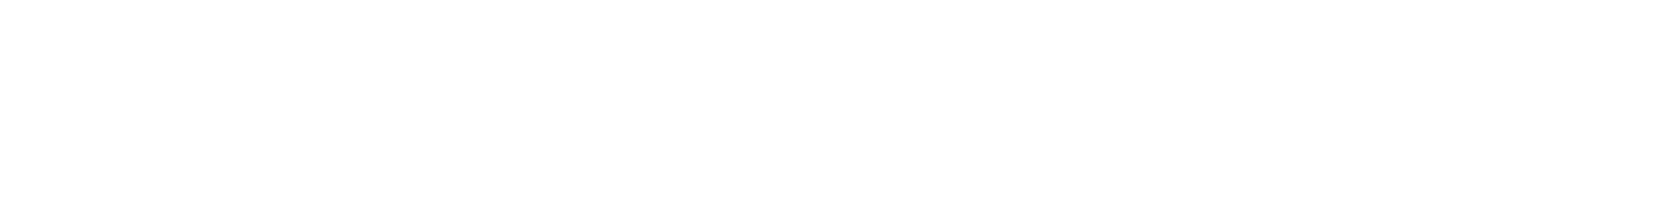 up to 30% off barstools & bar carts + free shipping